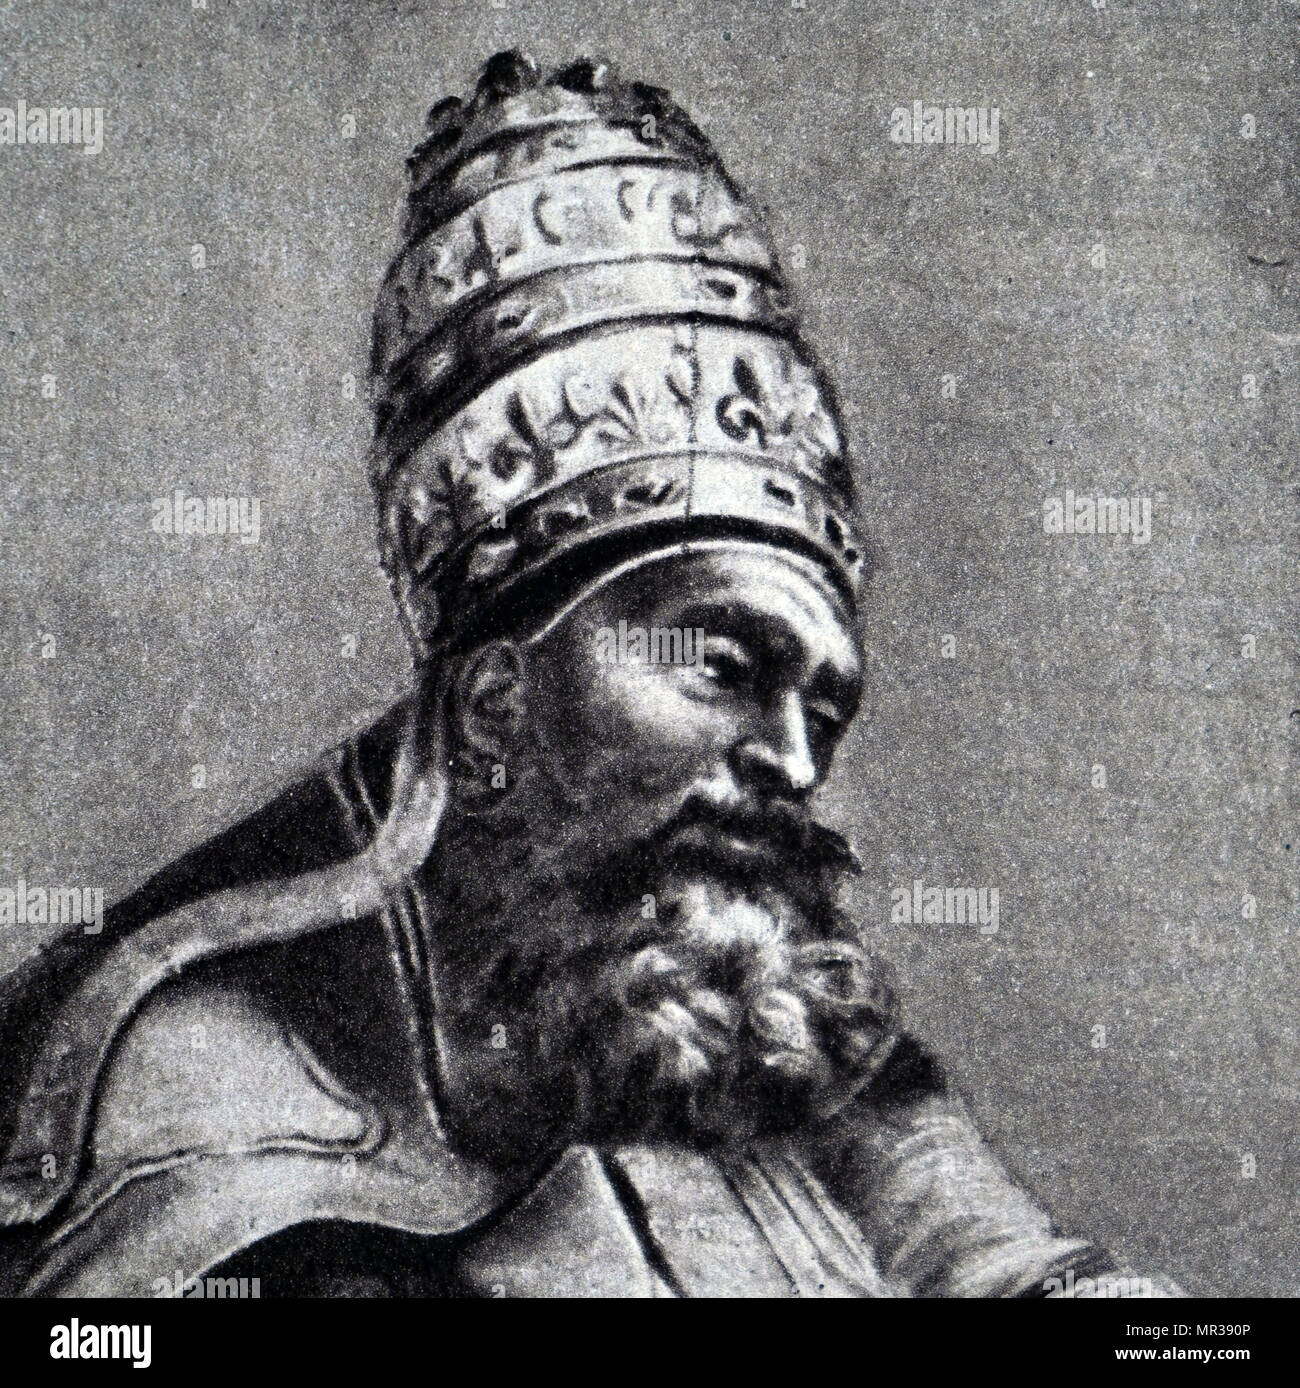 Portrait of Pope Gregory VII (1020-1085) one of the great reforming popes. Dated 11th century - Stock Image